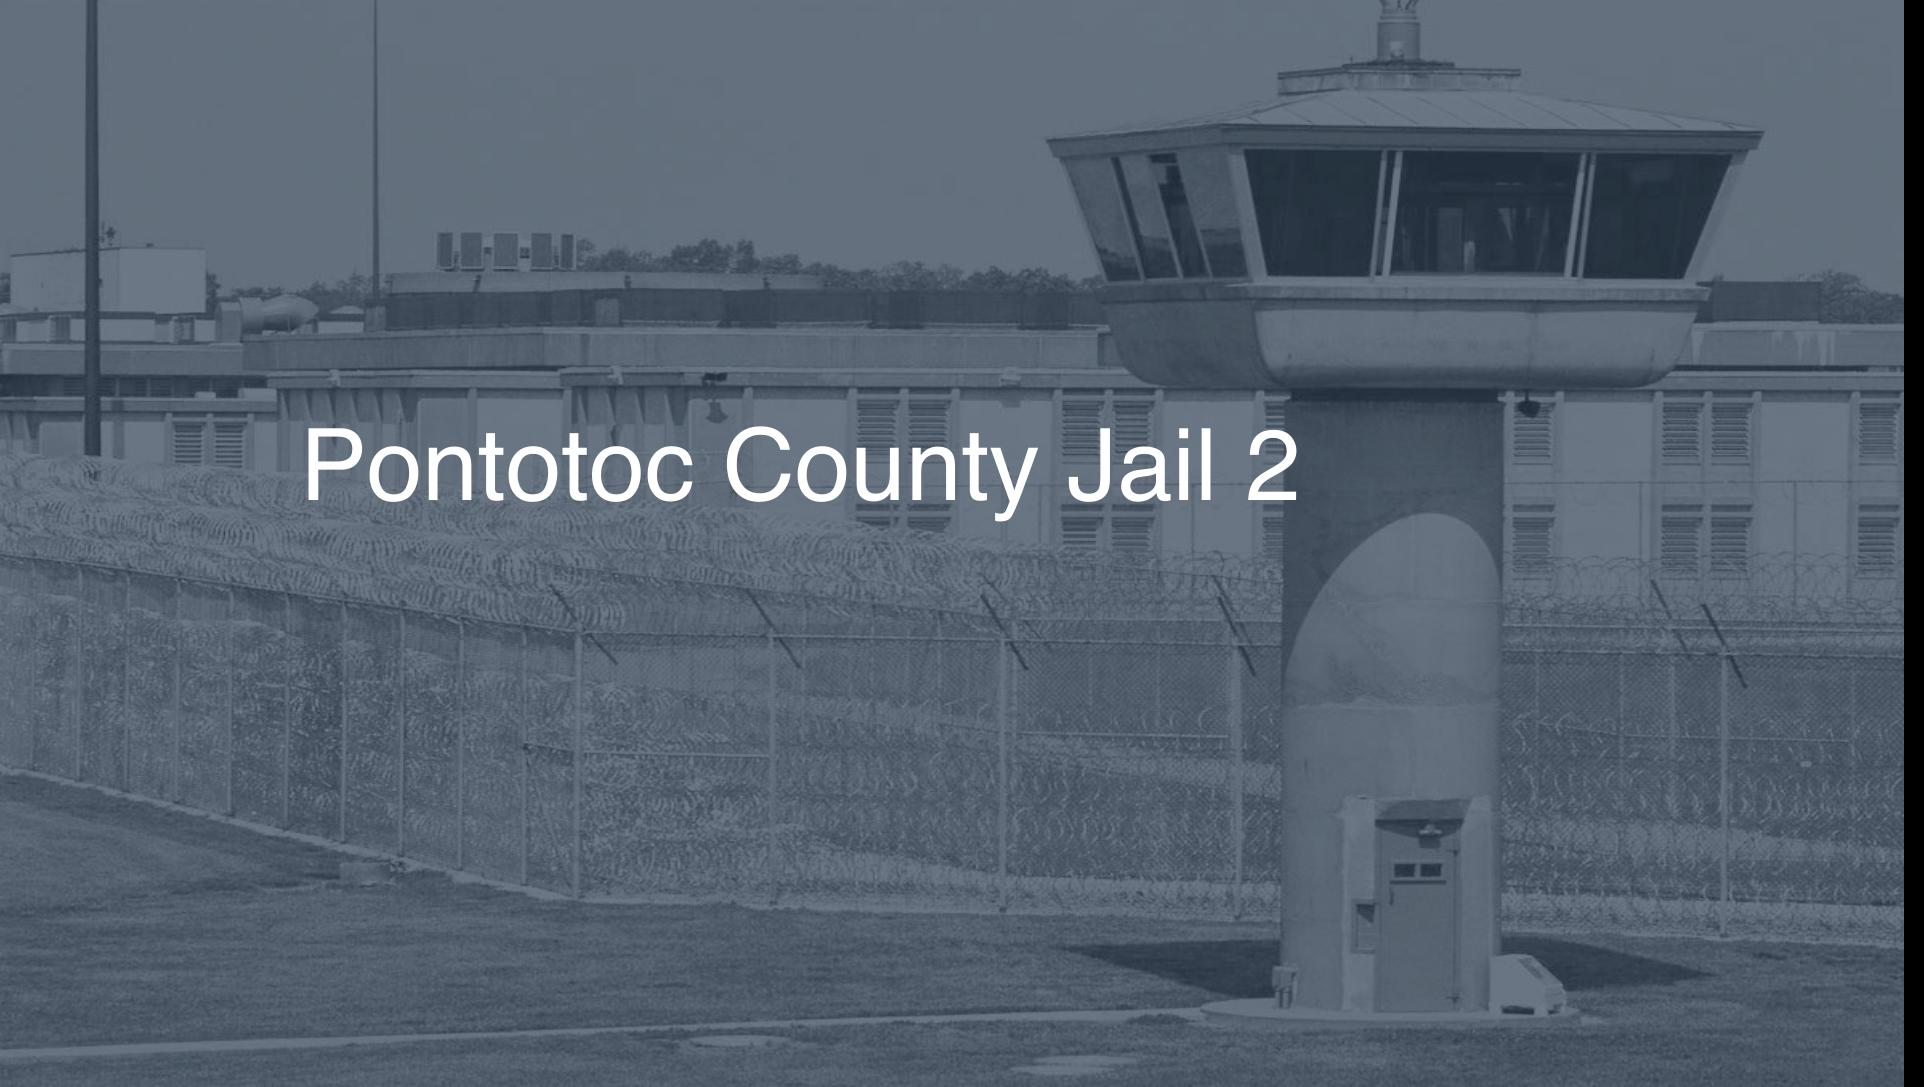 Pontotoc County Jail correctional facility picture